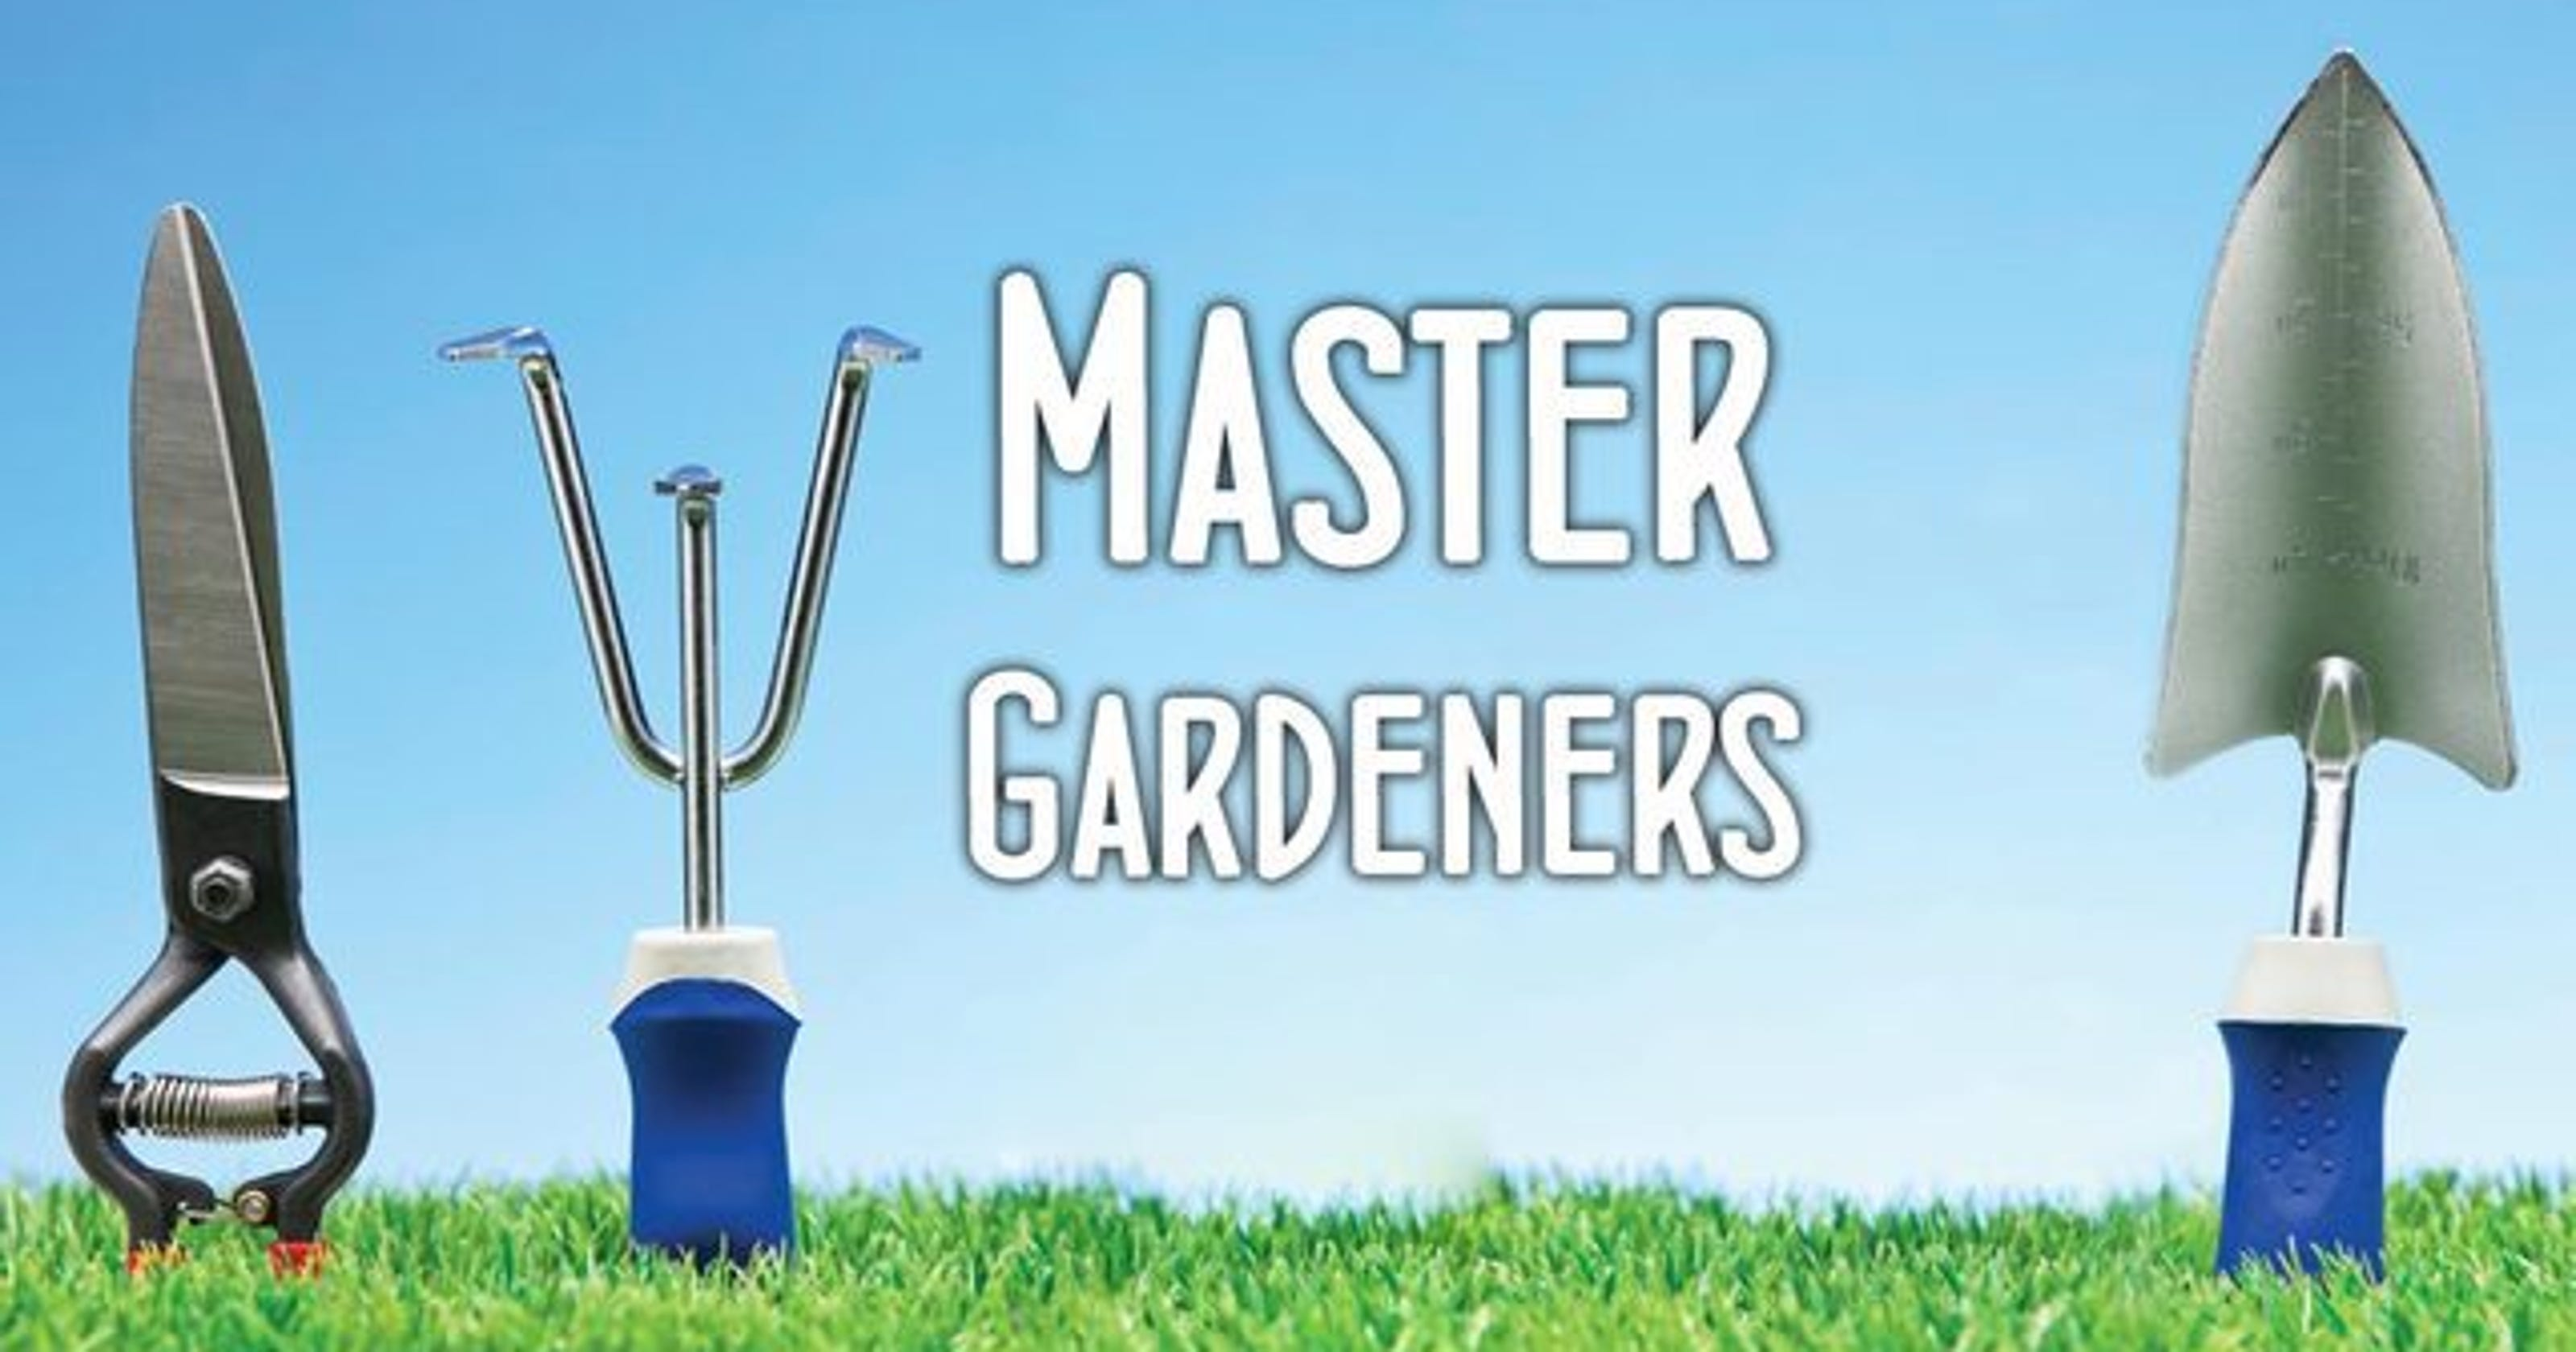 Train to become a Master Gardener